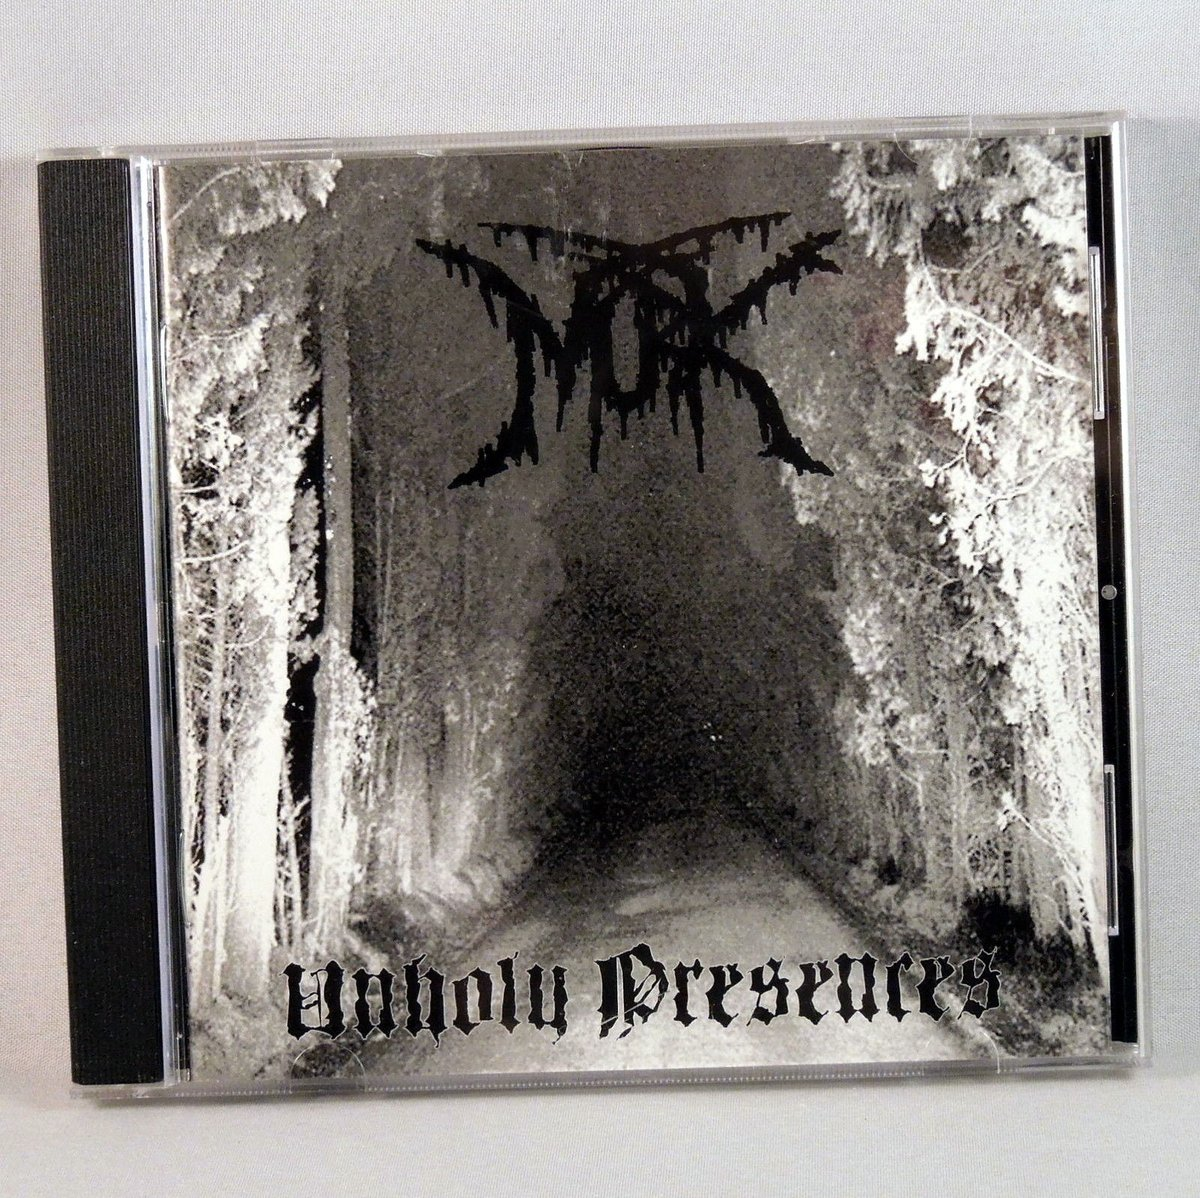 Check out MURK - Unholy Presences https://ebay.to/2wteS18  (CD No Colours Records) NEW #BlackMetal #ThrashMetal #UnholyPresences #BrandNew #cd #Murk #Italy #Band #NoColoursRecords  #New  http://www.versalcentre.com  | #VersalCentre #save #discount #sale #lowprice #niceprice #makeofferpic.twitter.com/p6RIiMJ79O